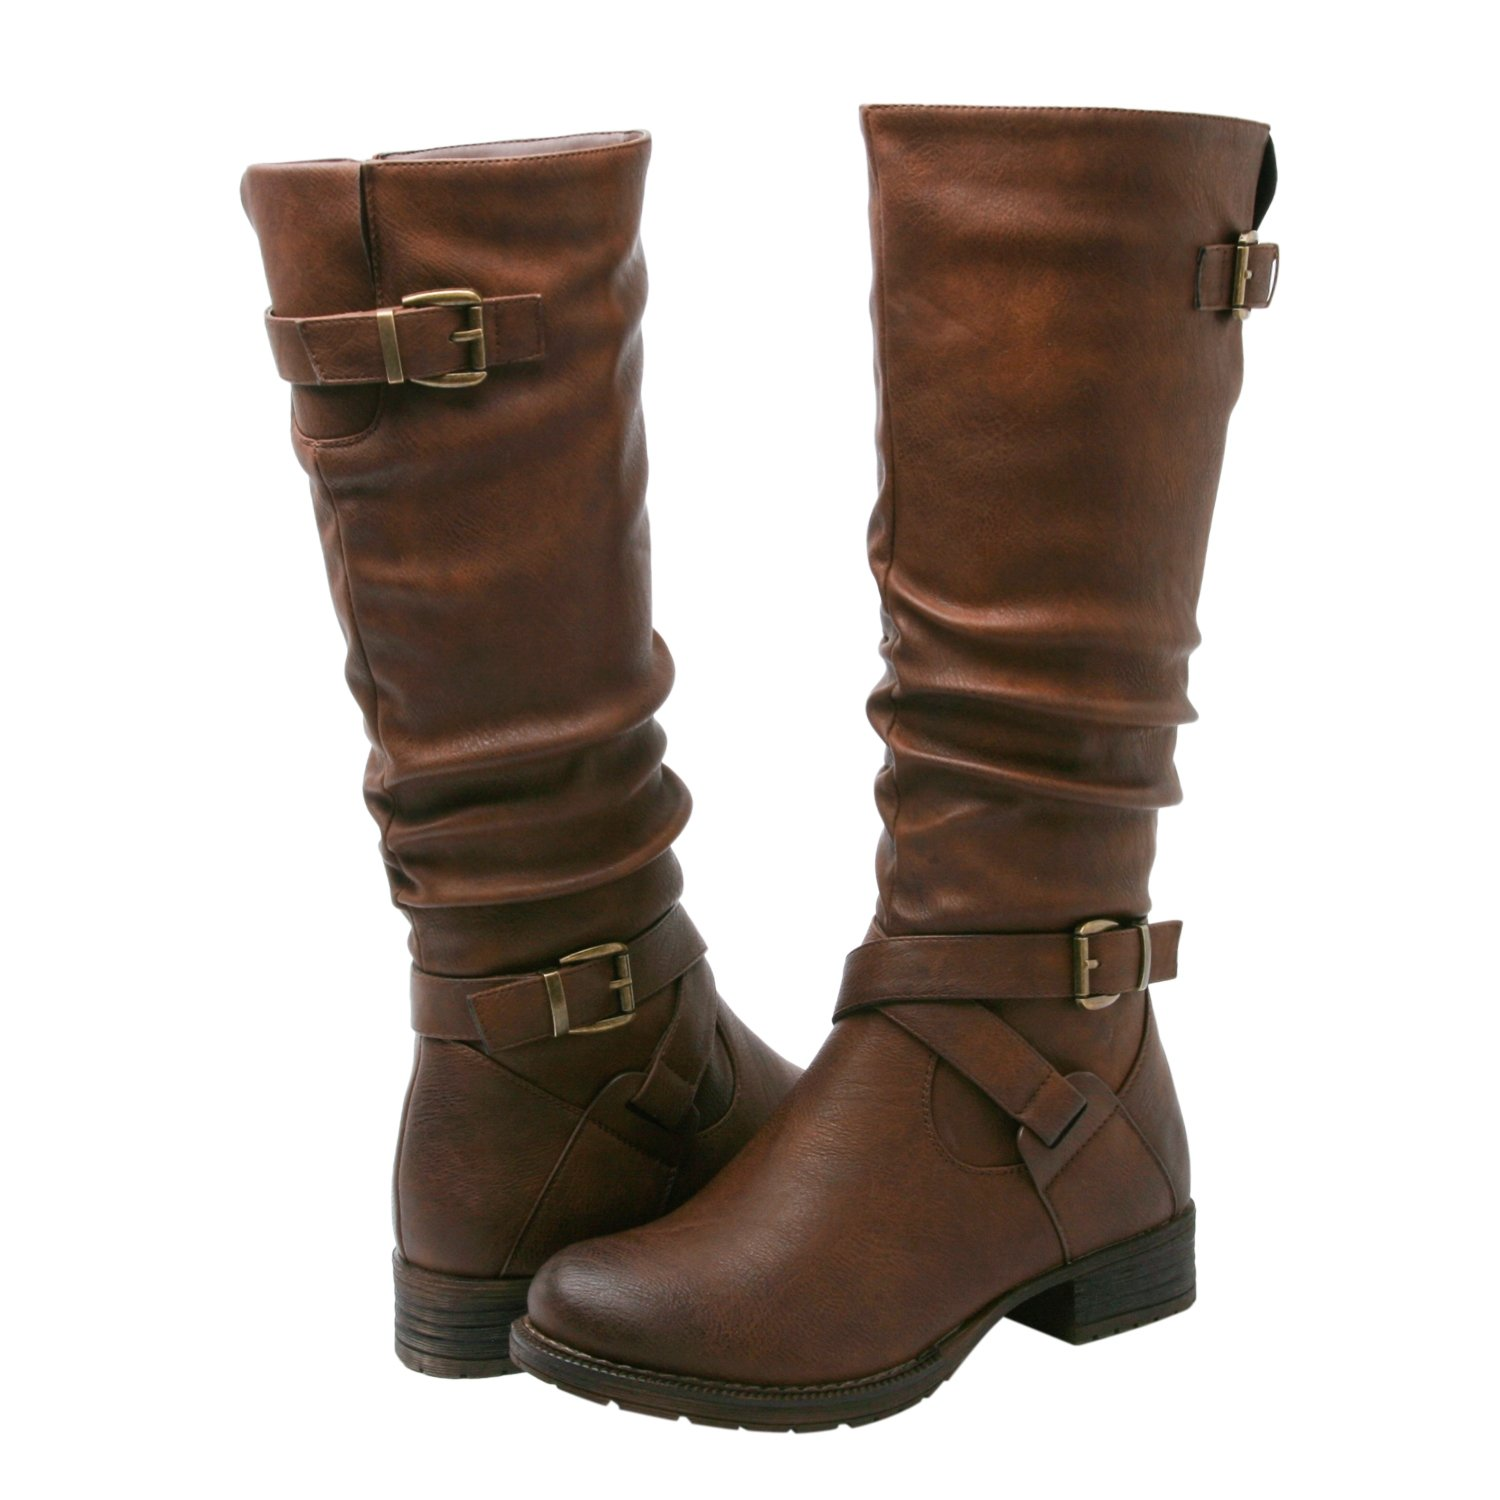 Women's KadiMaya1622-3 Boots 6.5M,Brown22 by Global Win (Image #1)